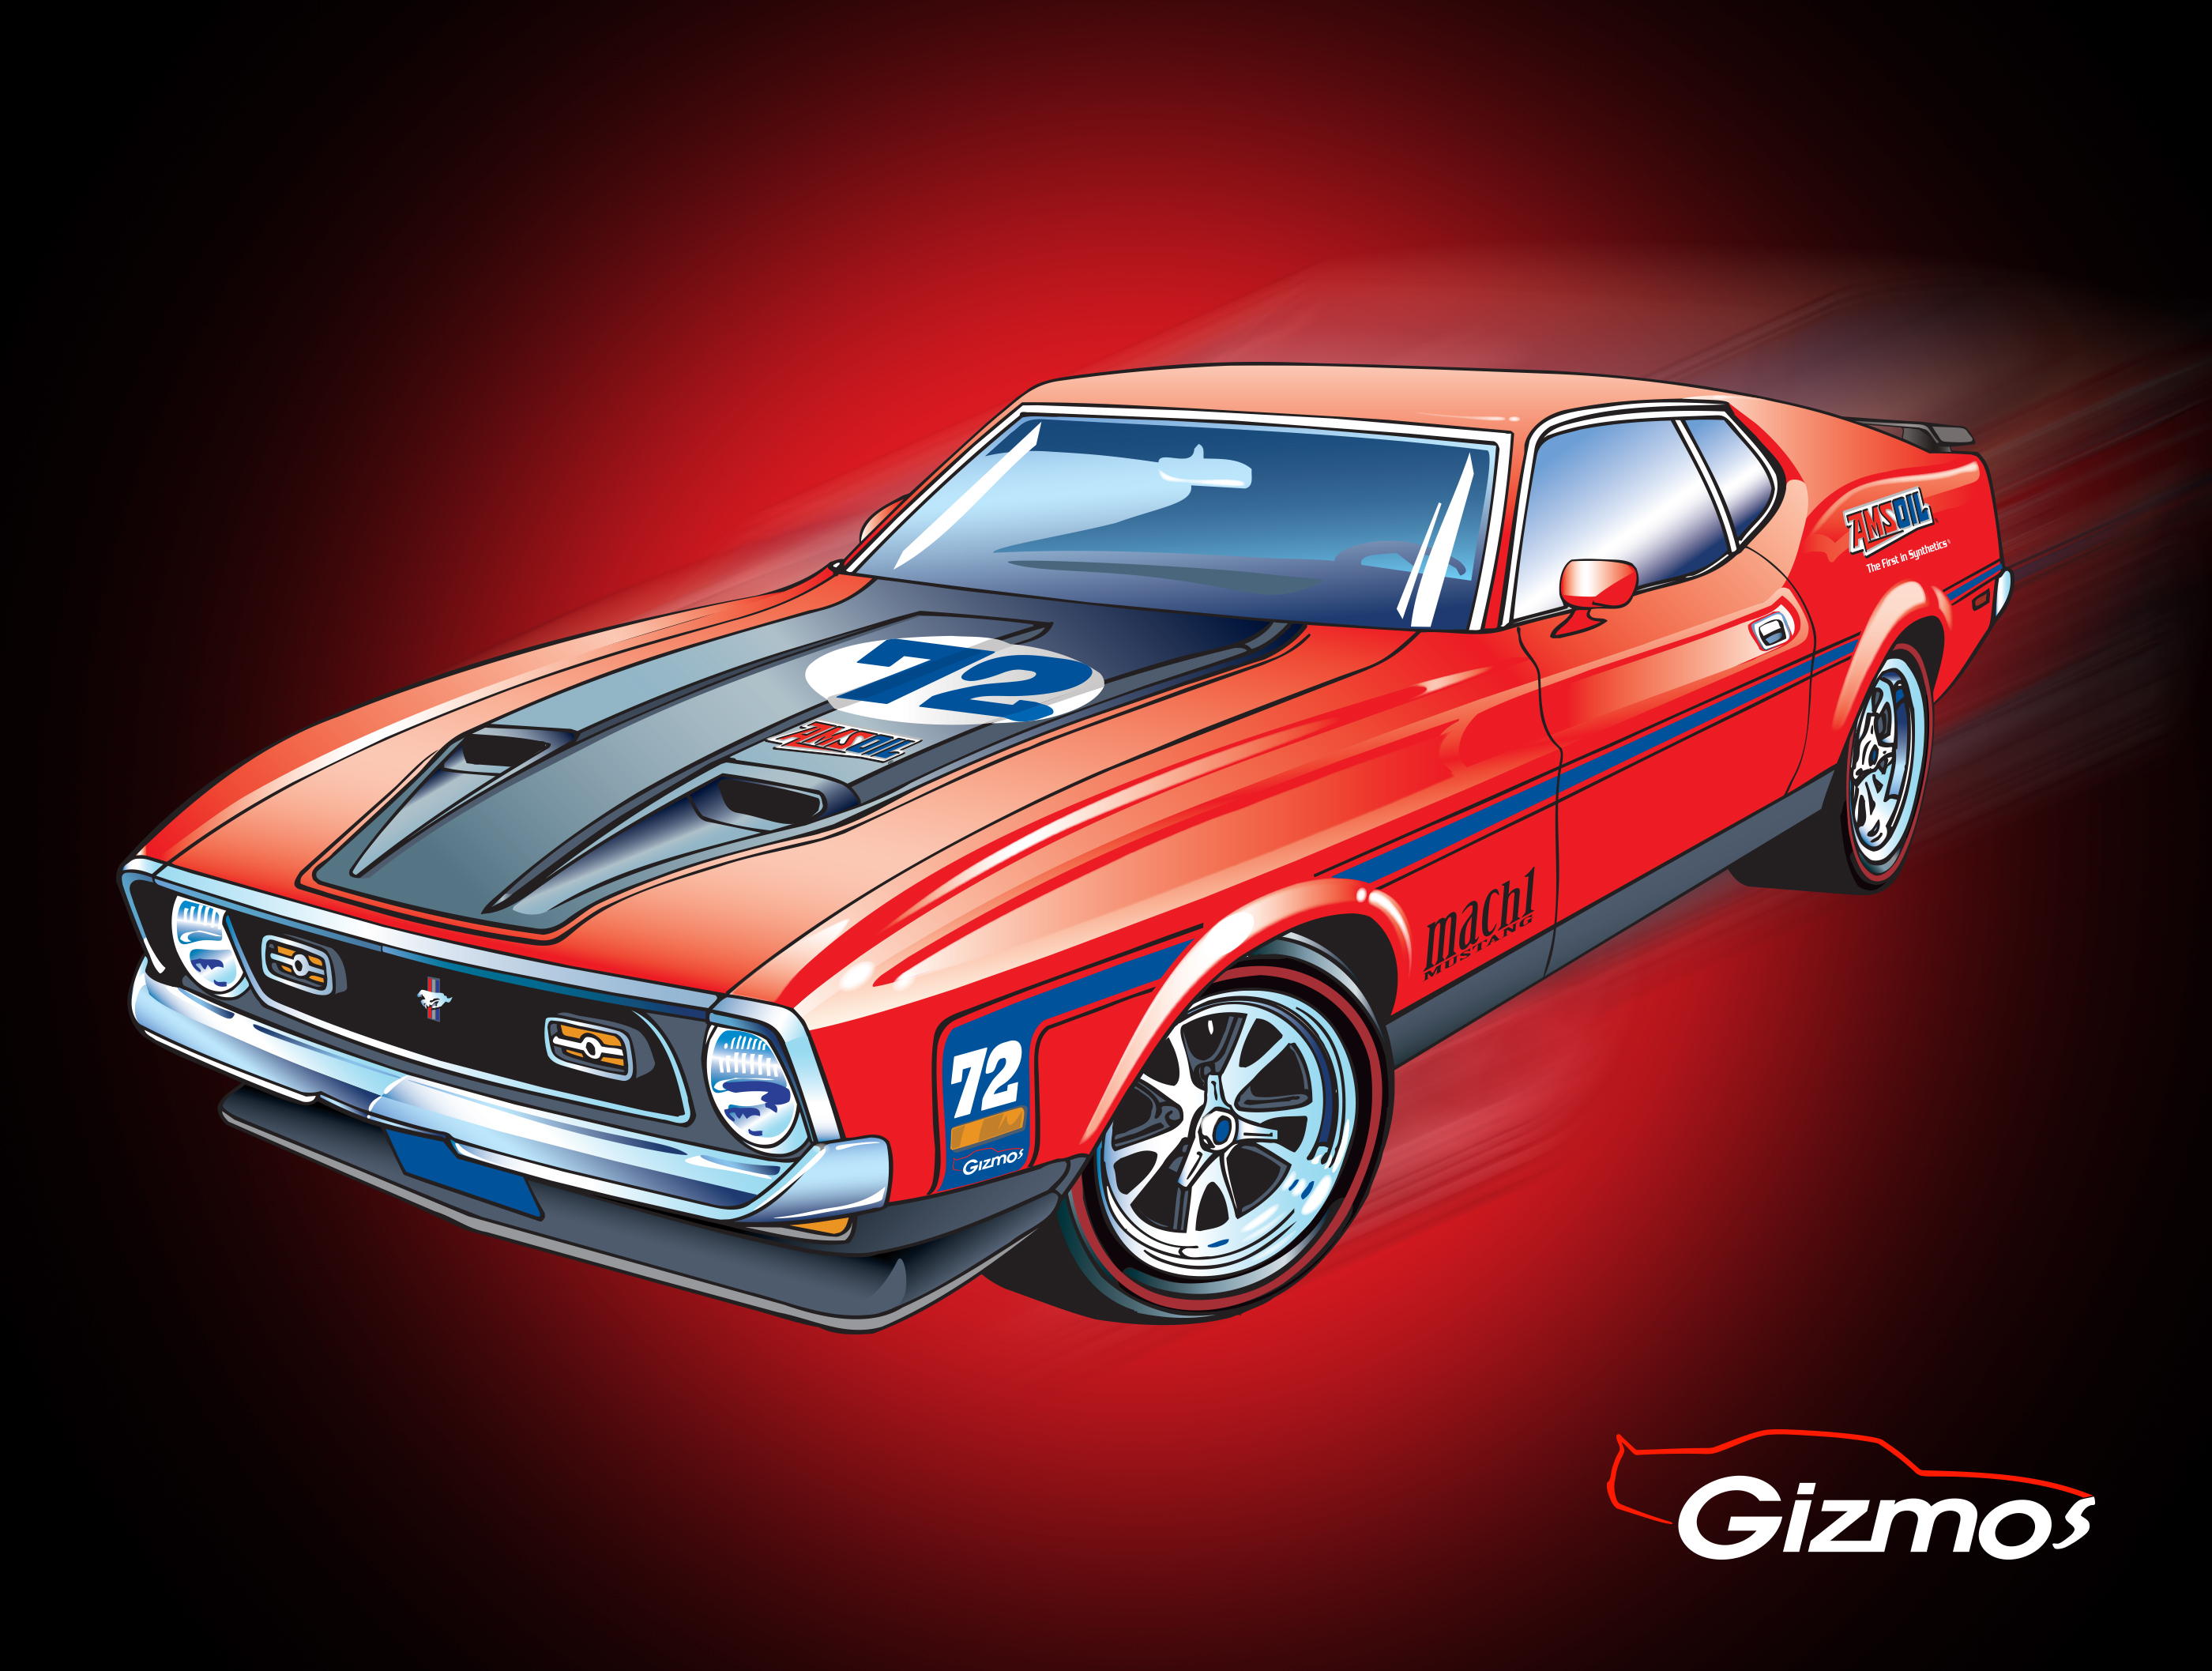 Fully modified 1972 ford mustang mach 1 to be given away